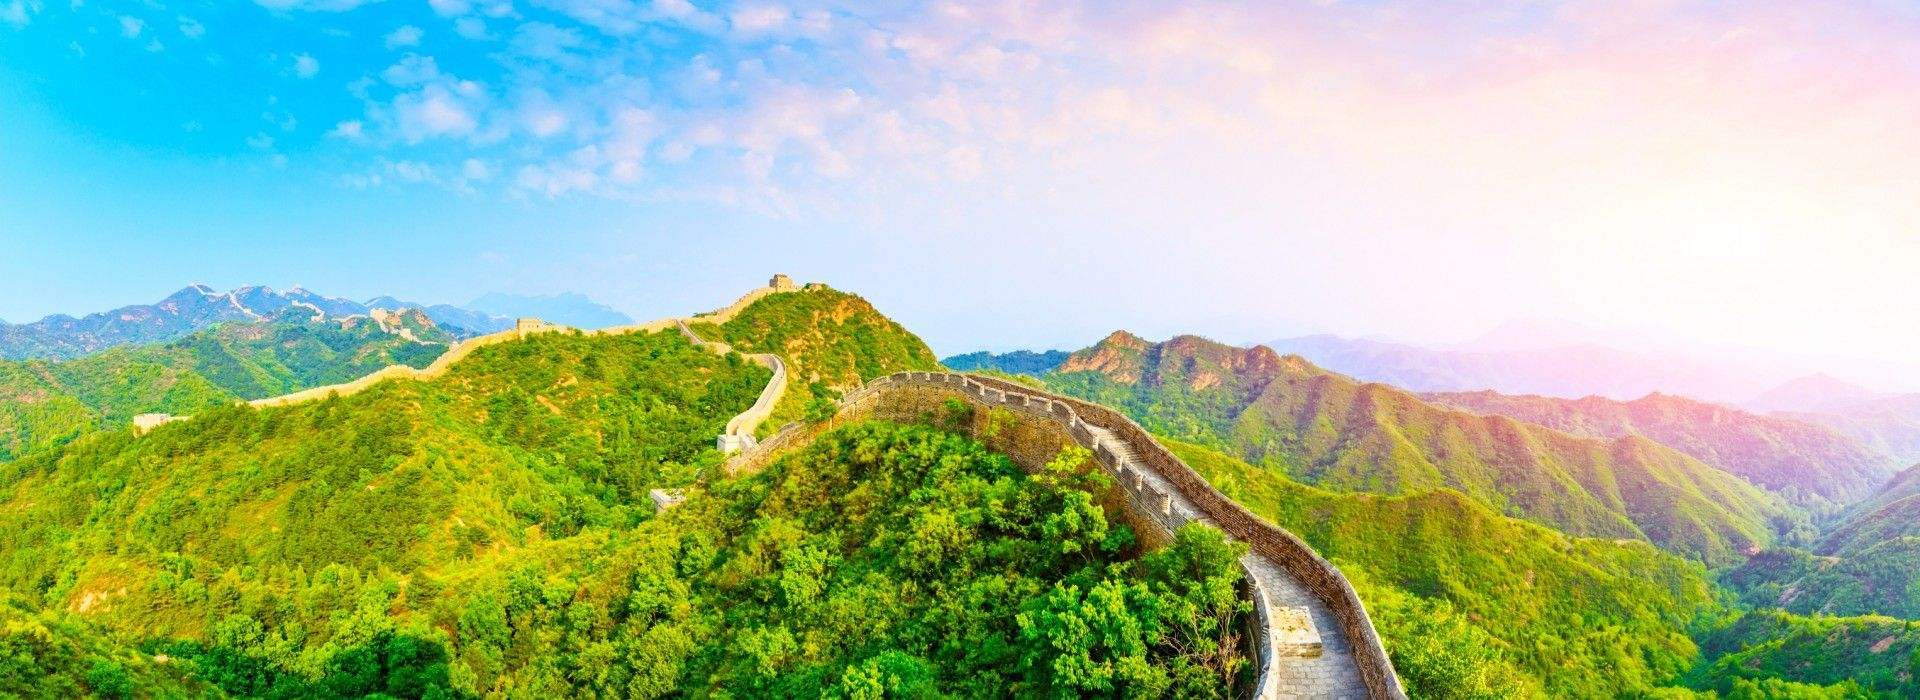 City sightseeing Tours in Guangzhou